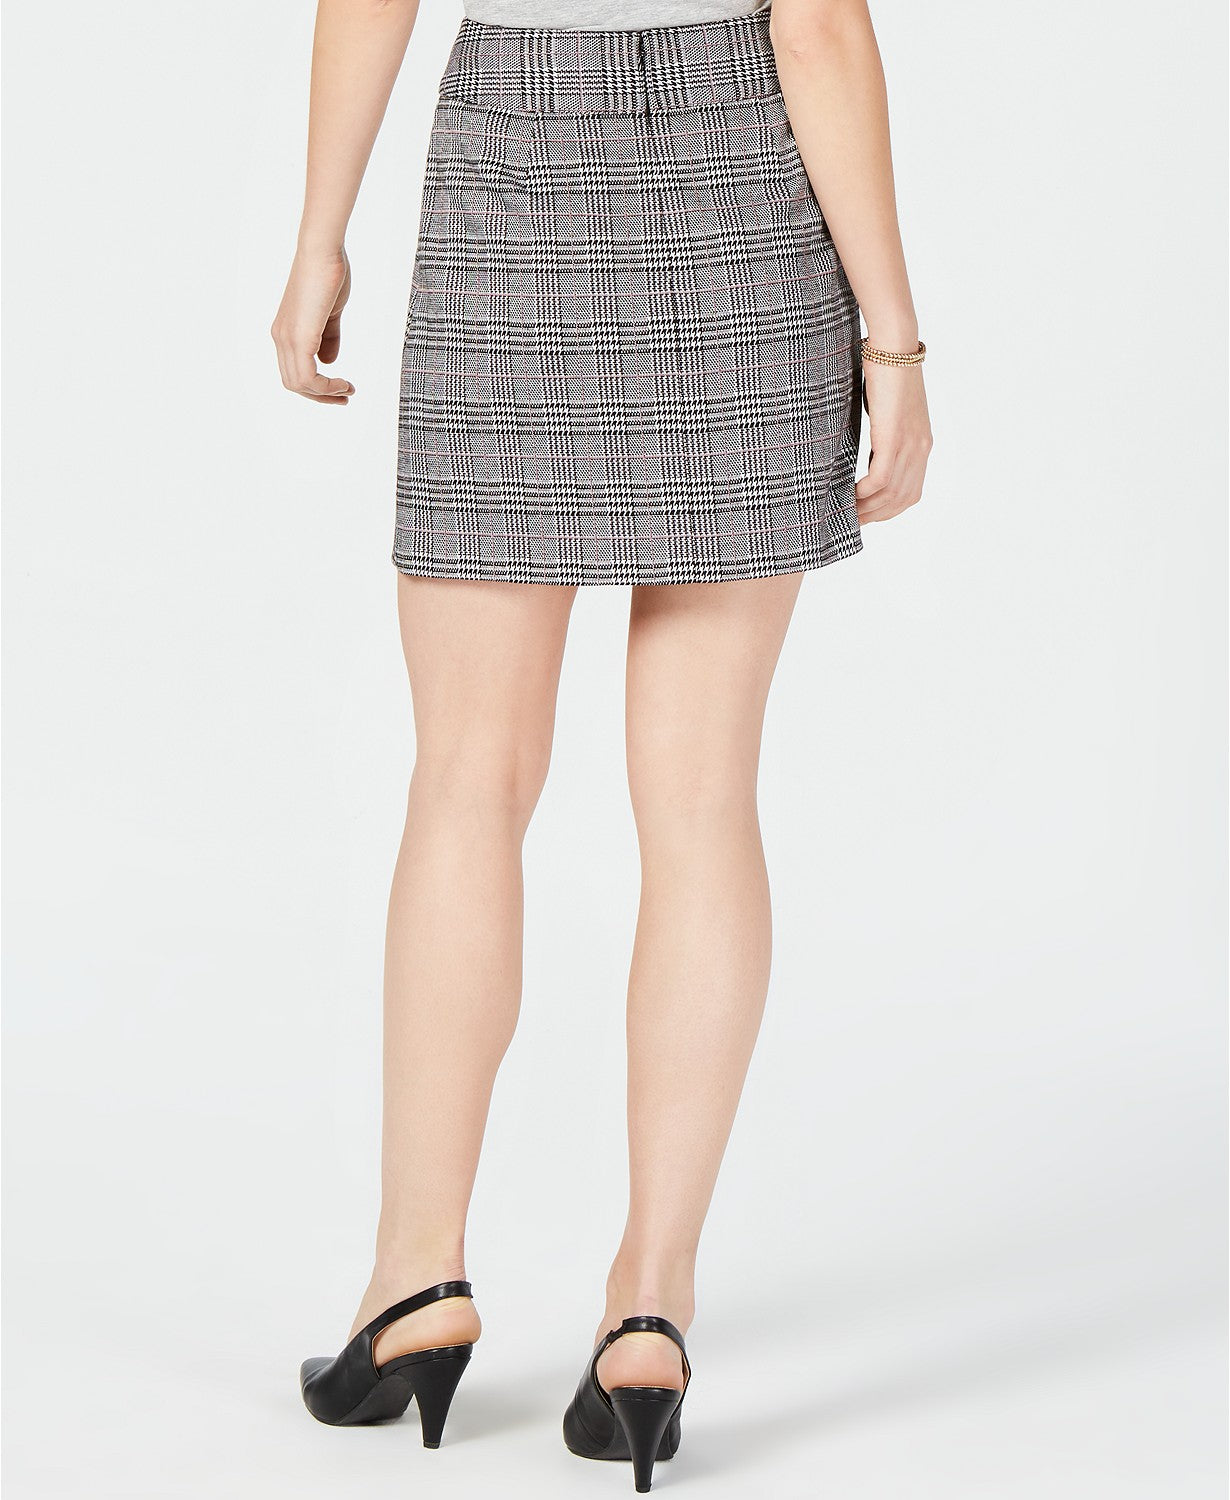 Maison Jules Menswear Plaid Mini Skirt Black Combo XS